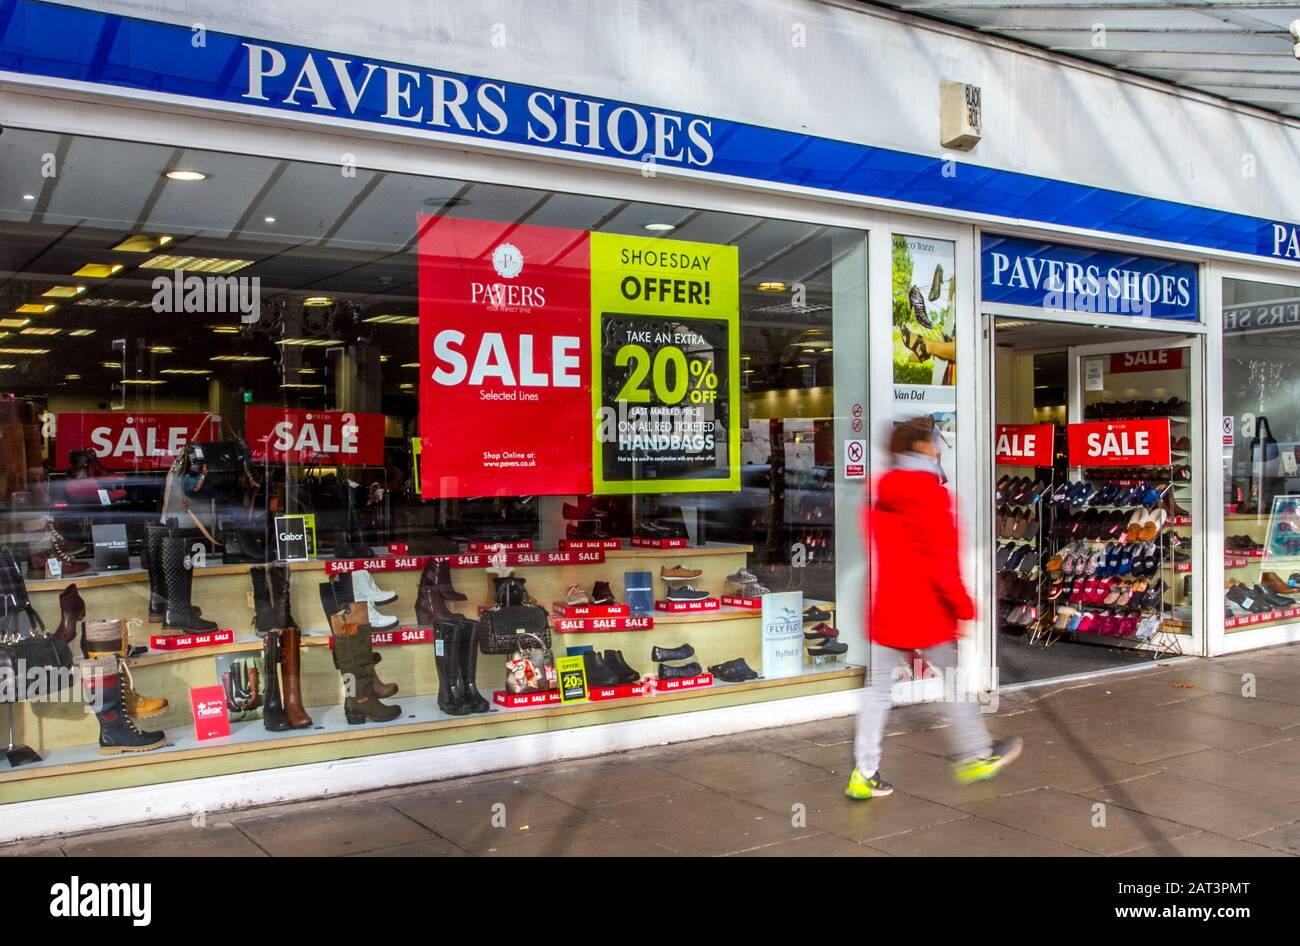 Pavers Shoes High Resolution Stock